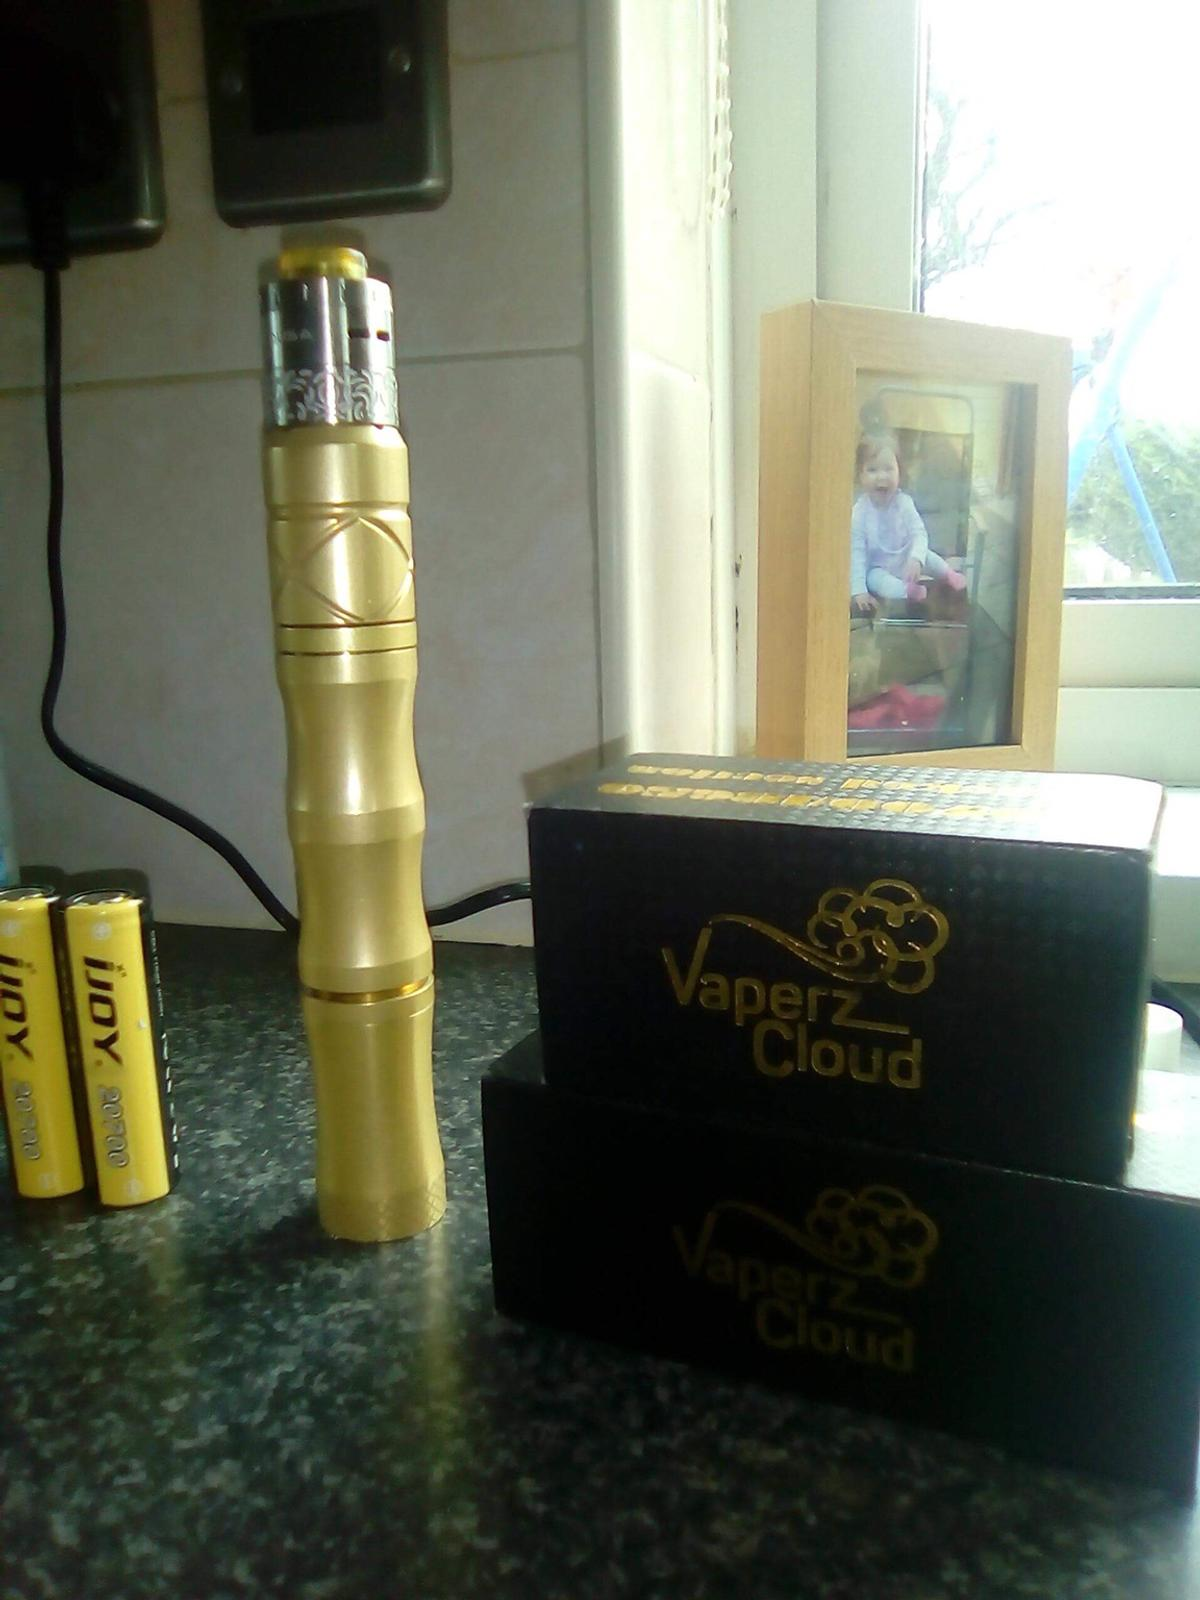 Vaperz cloud XXX mech mid & stack tube in SY5 Cressage for